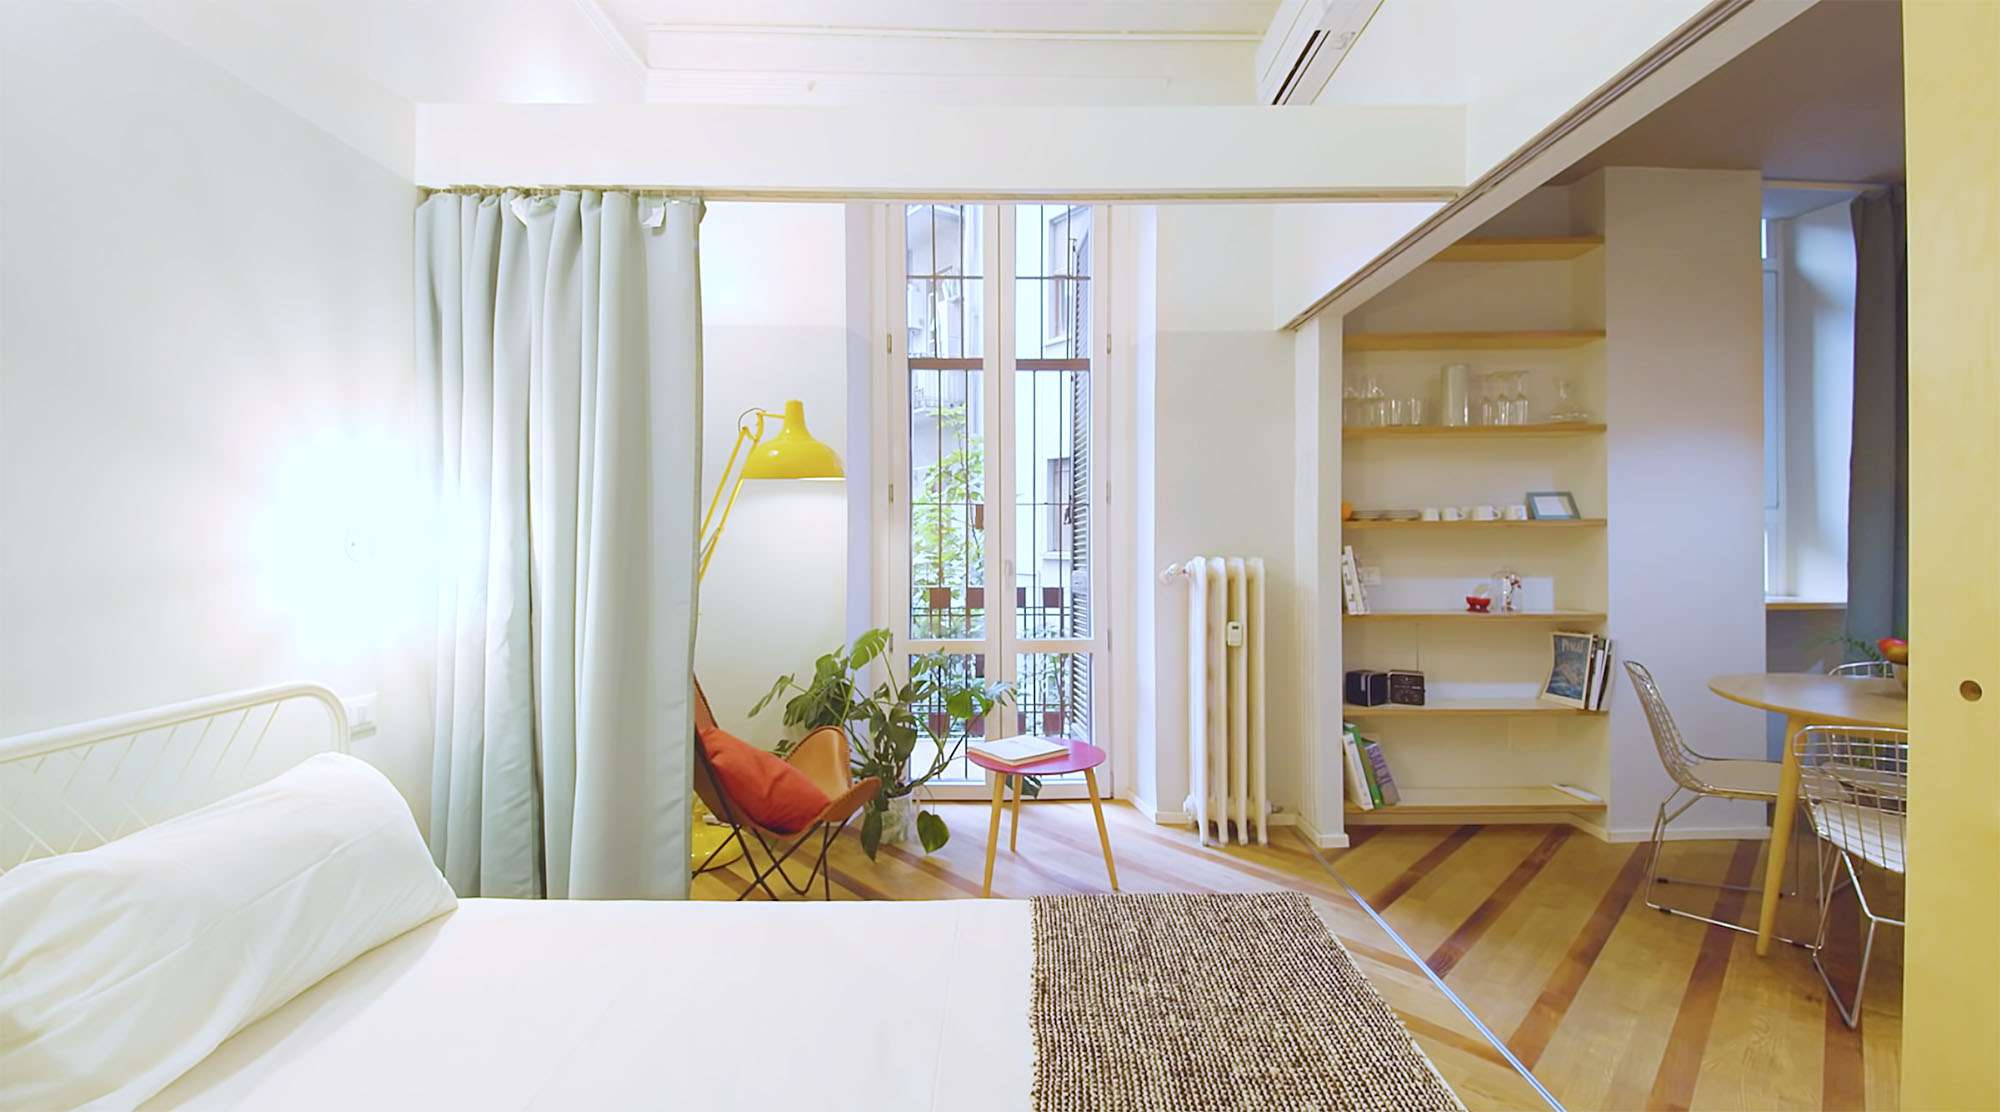 House In Constant Transition small apartment renovation ATOMAA bedroom